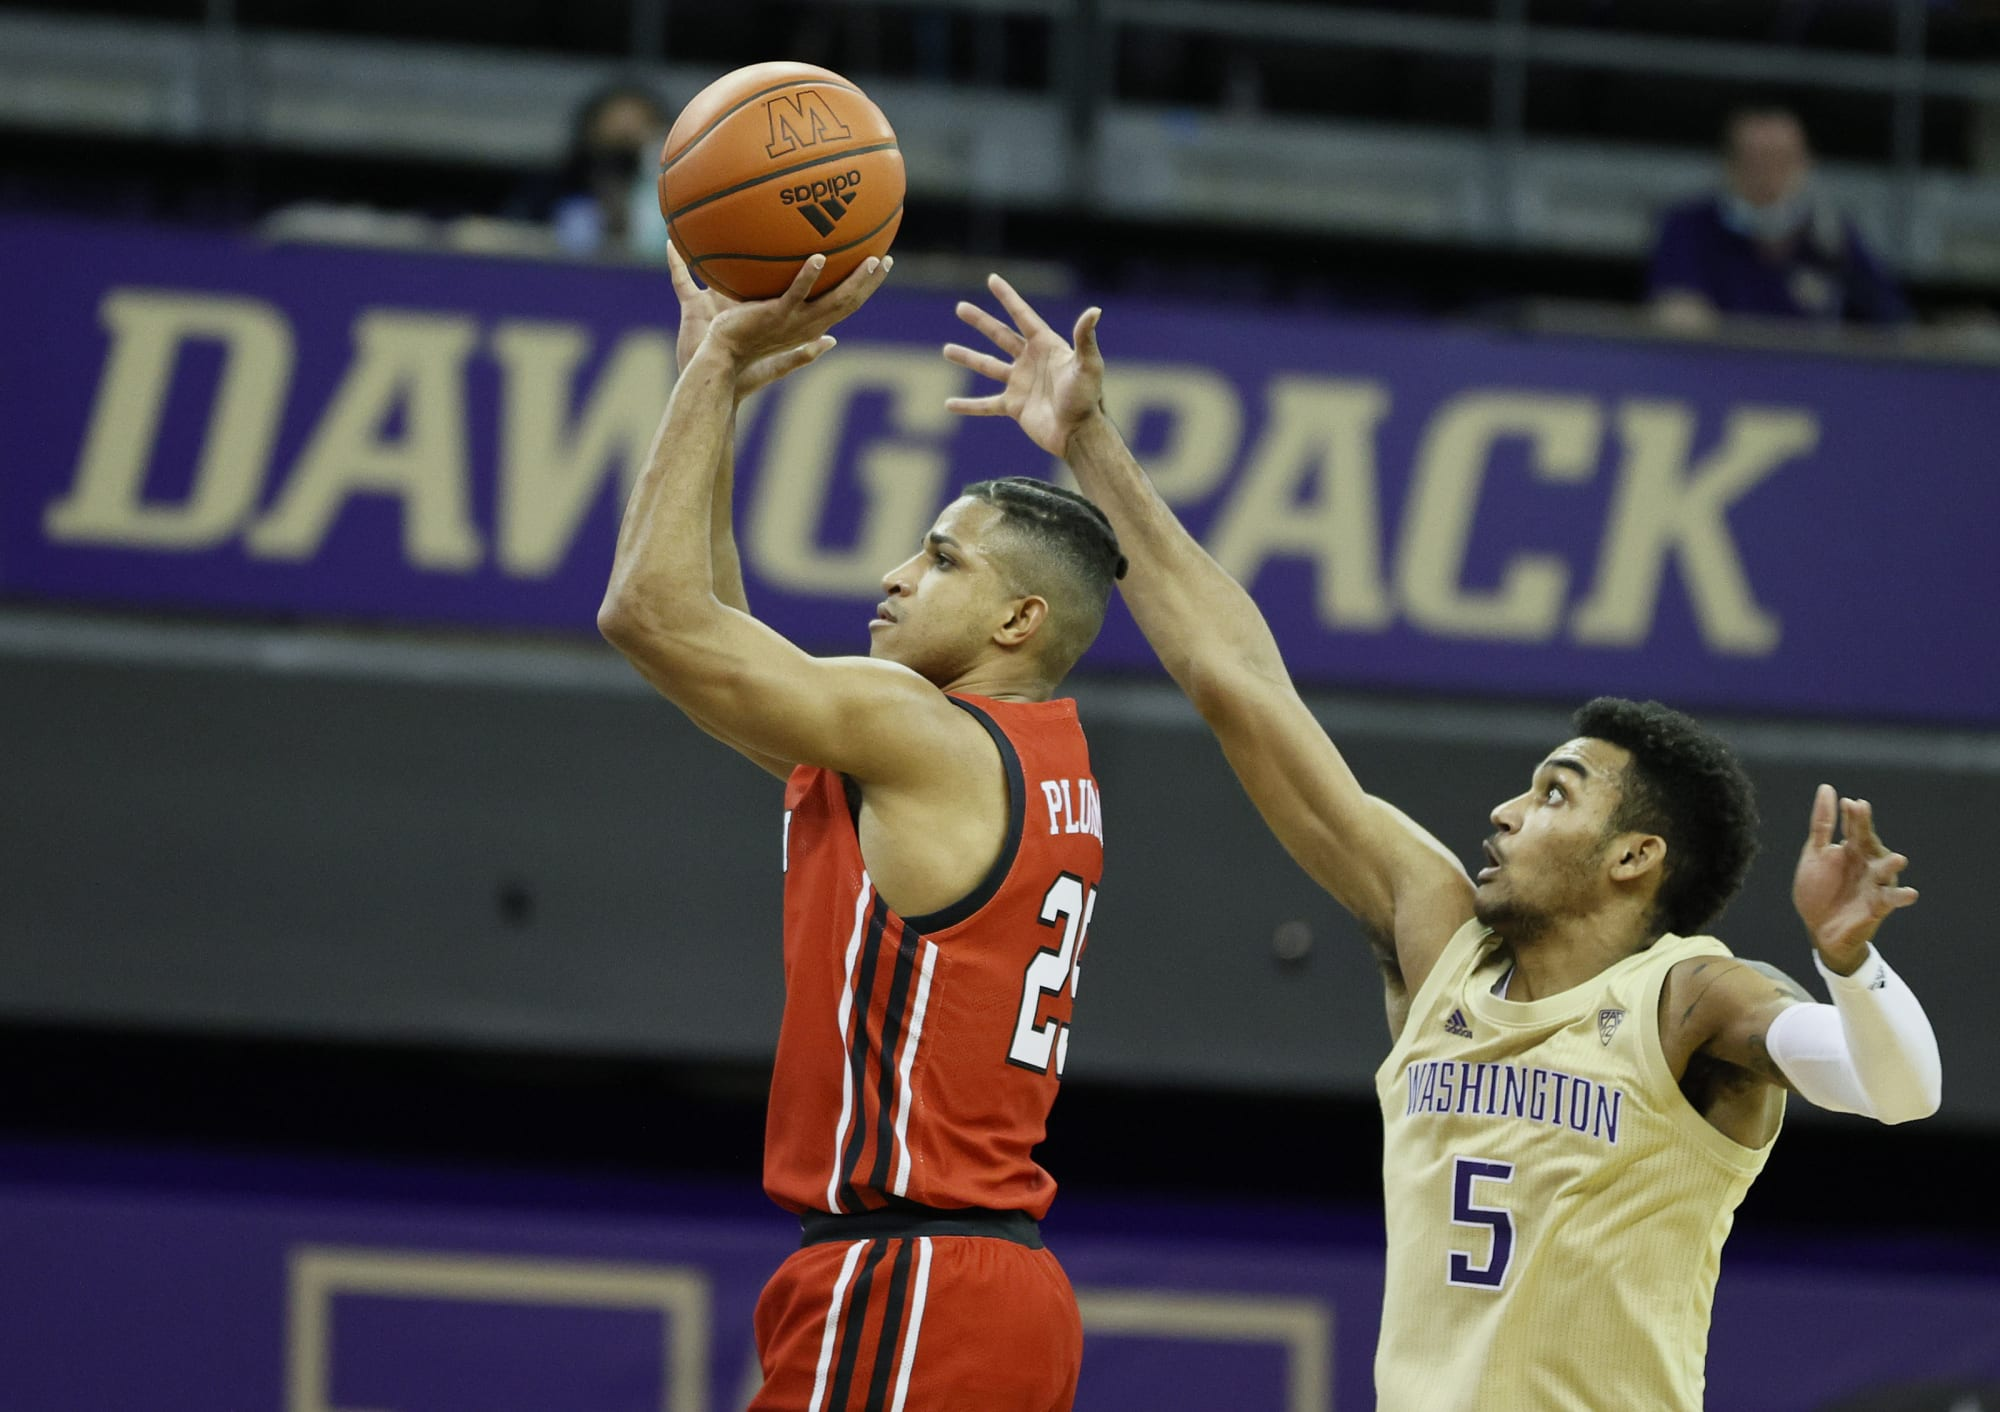 Illinois Basketball: Illini land in top 5 for top transfer shooting guard